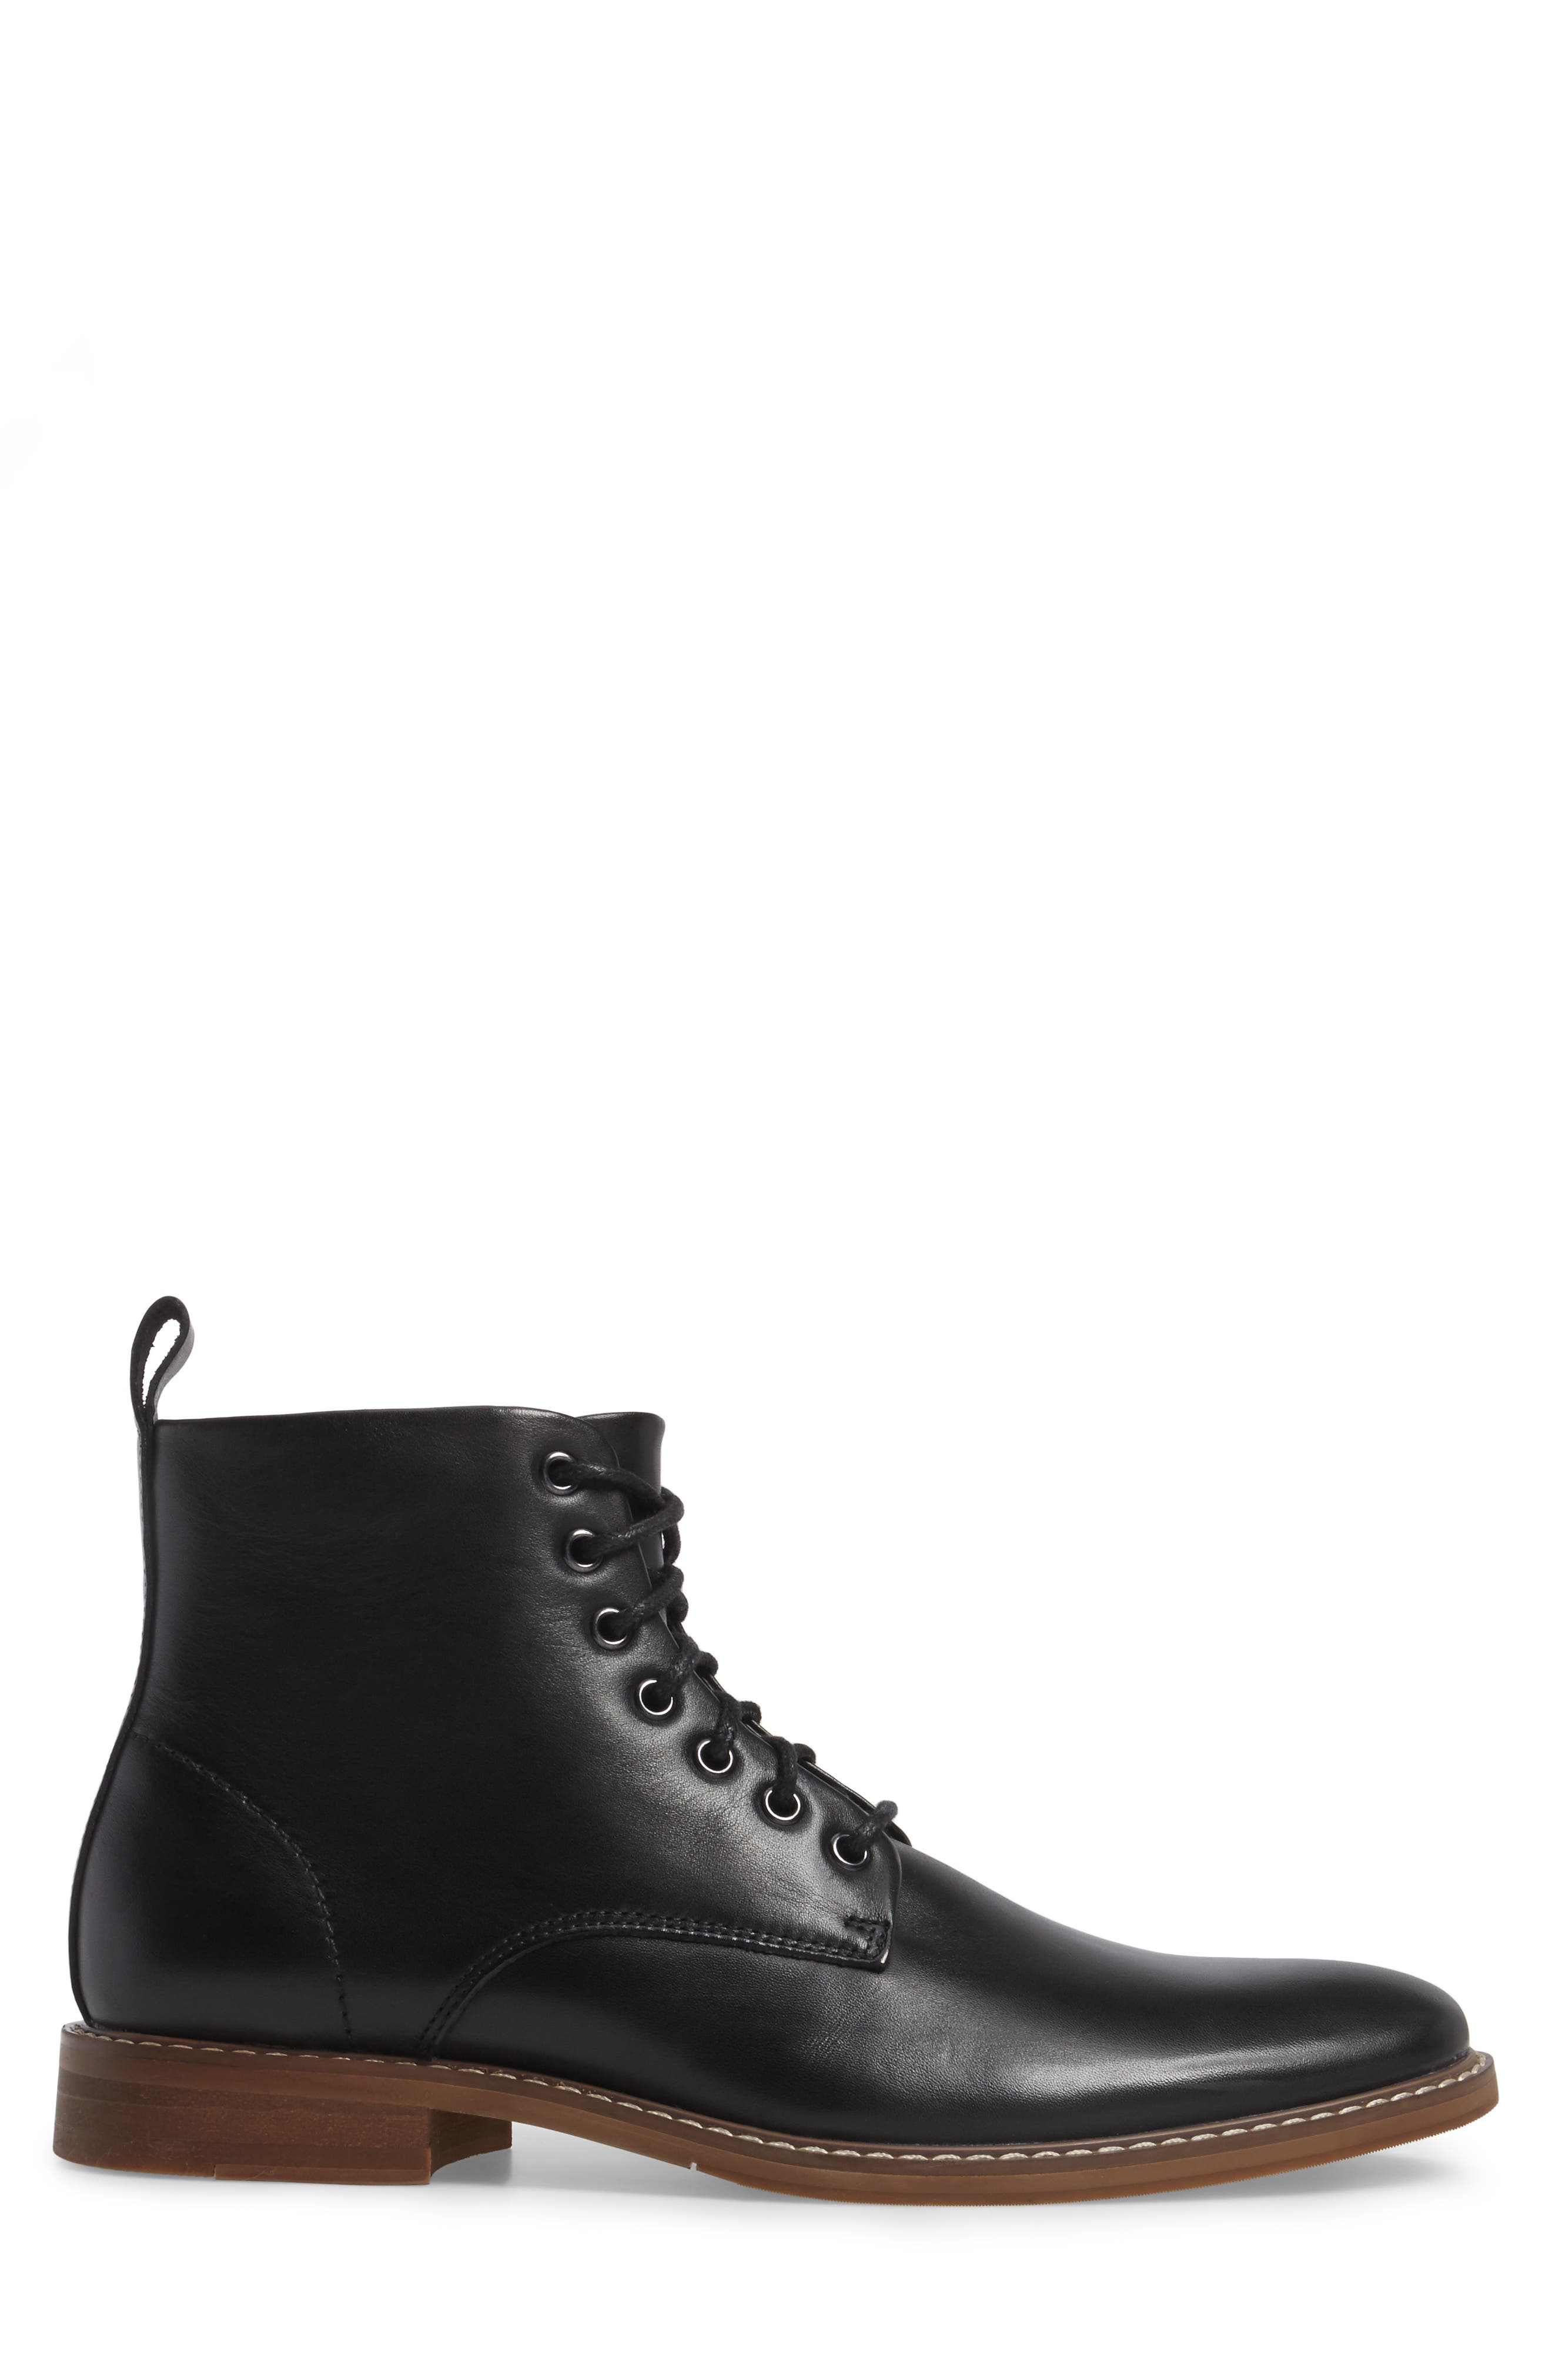 Albany Plain Toe Boot,                             Alternate thumbnail 3, color,                             BLACK LEATHER